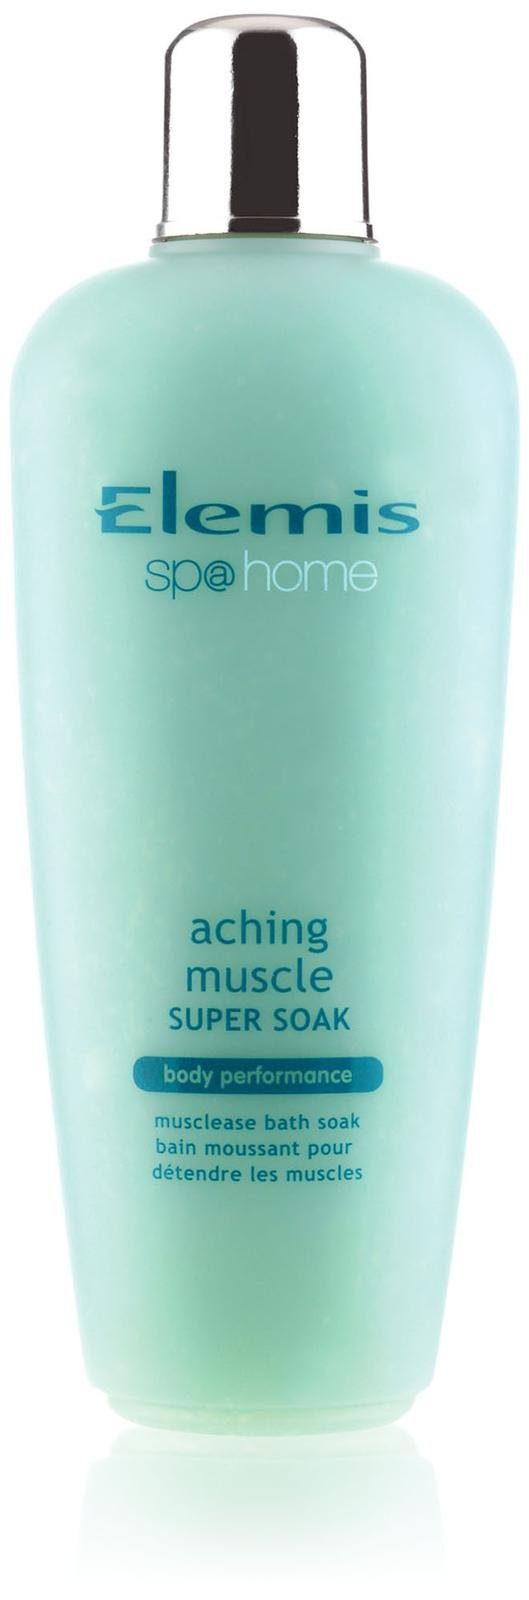 Elemis Sp@Home Body Performance Aching Muscle Super Soak